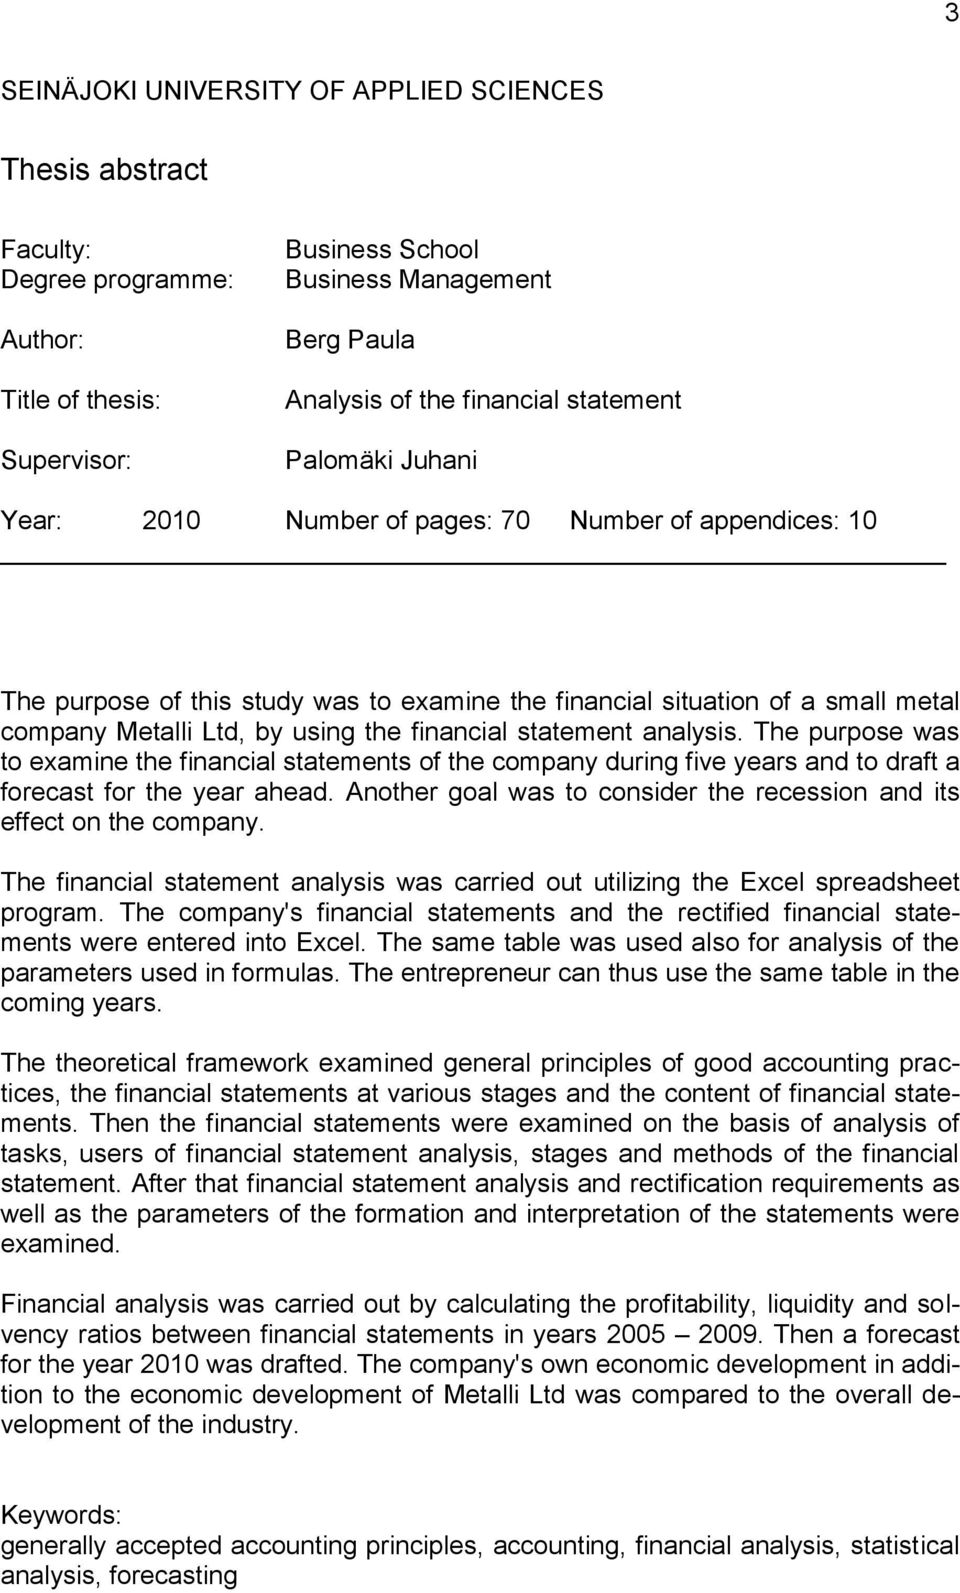 financial statement analysis. The purpose was to examine the financial statements of the company during five years and to draft a forecast for the year ahead.